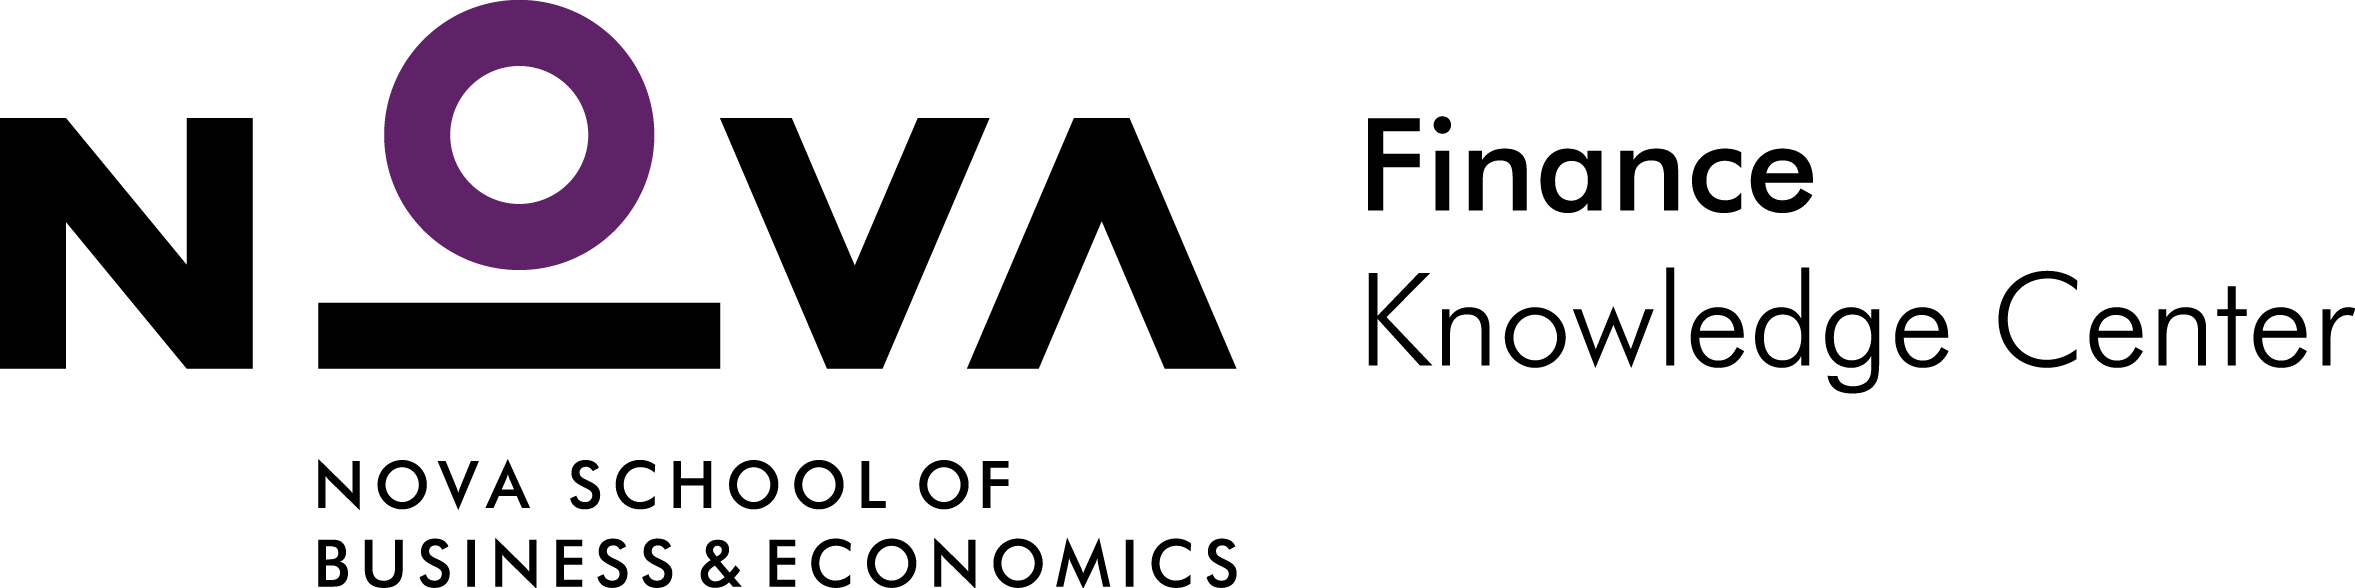 Nova SBE Finance Knowledge Center logo